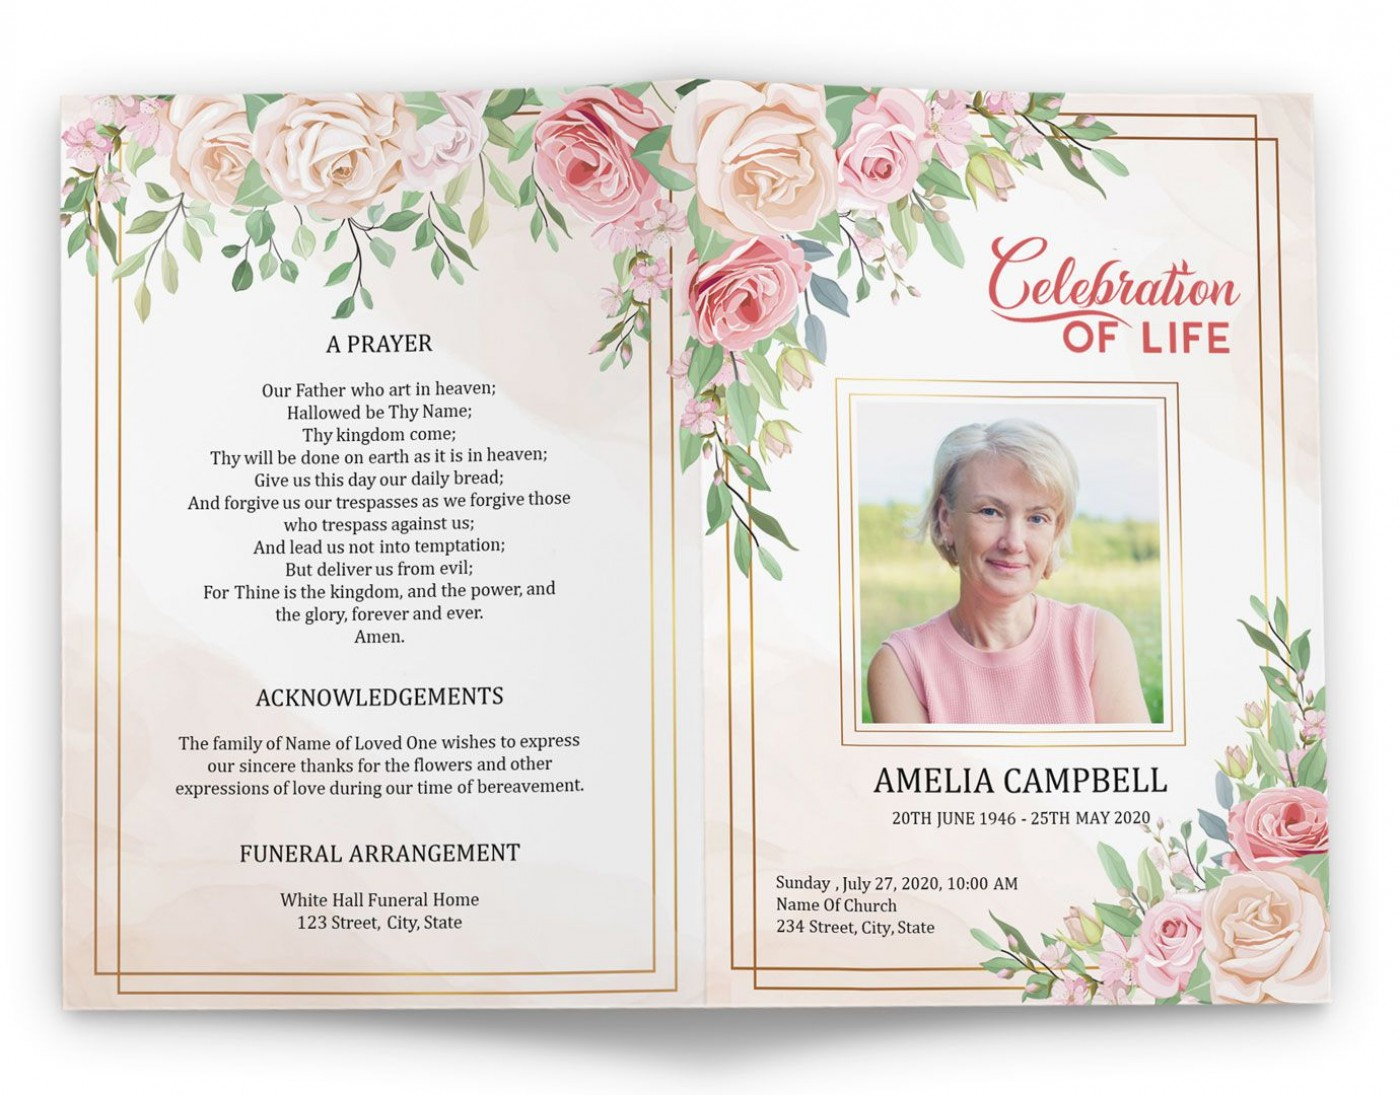 004 Unbelievable Free Editable Celebration Of Life Program Template High Resolution 1400